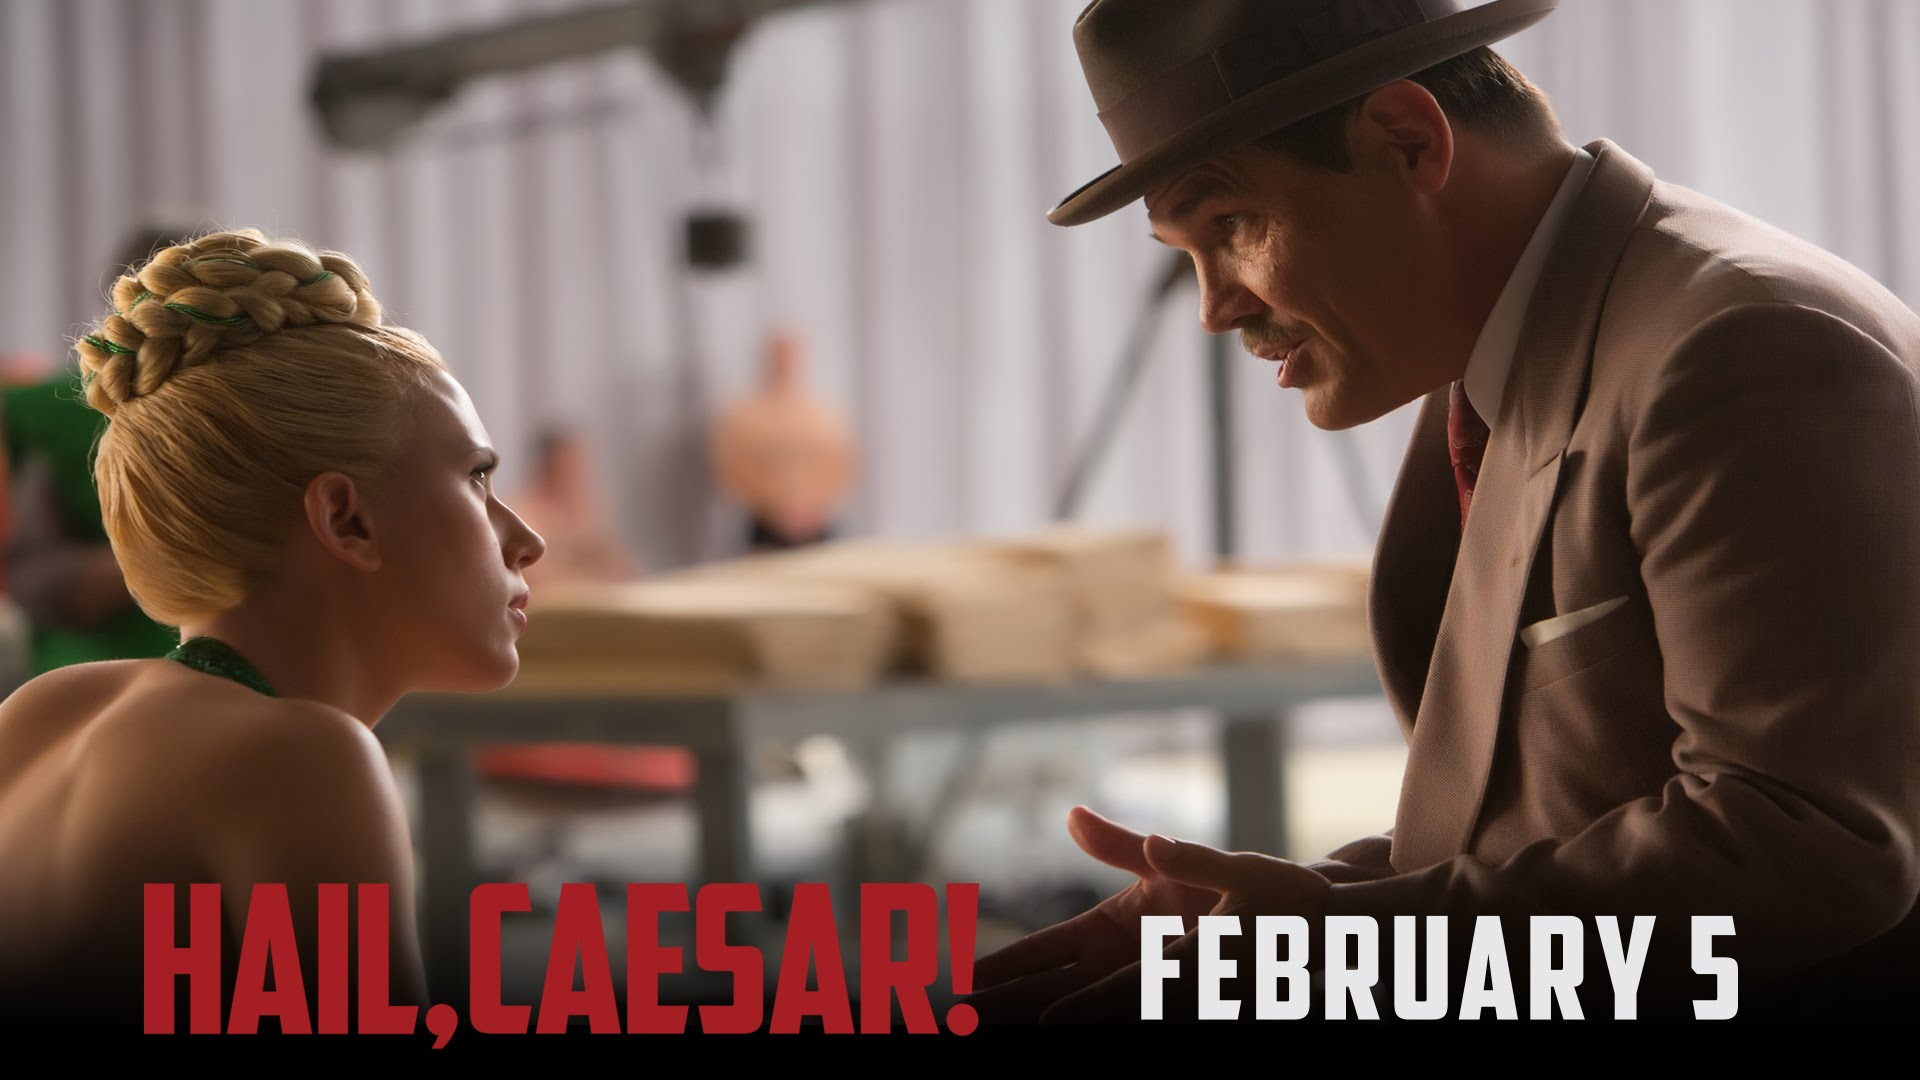 Hail, Caesar! - In Theaters February 5 (TV Spot 15)